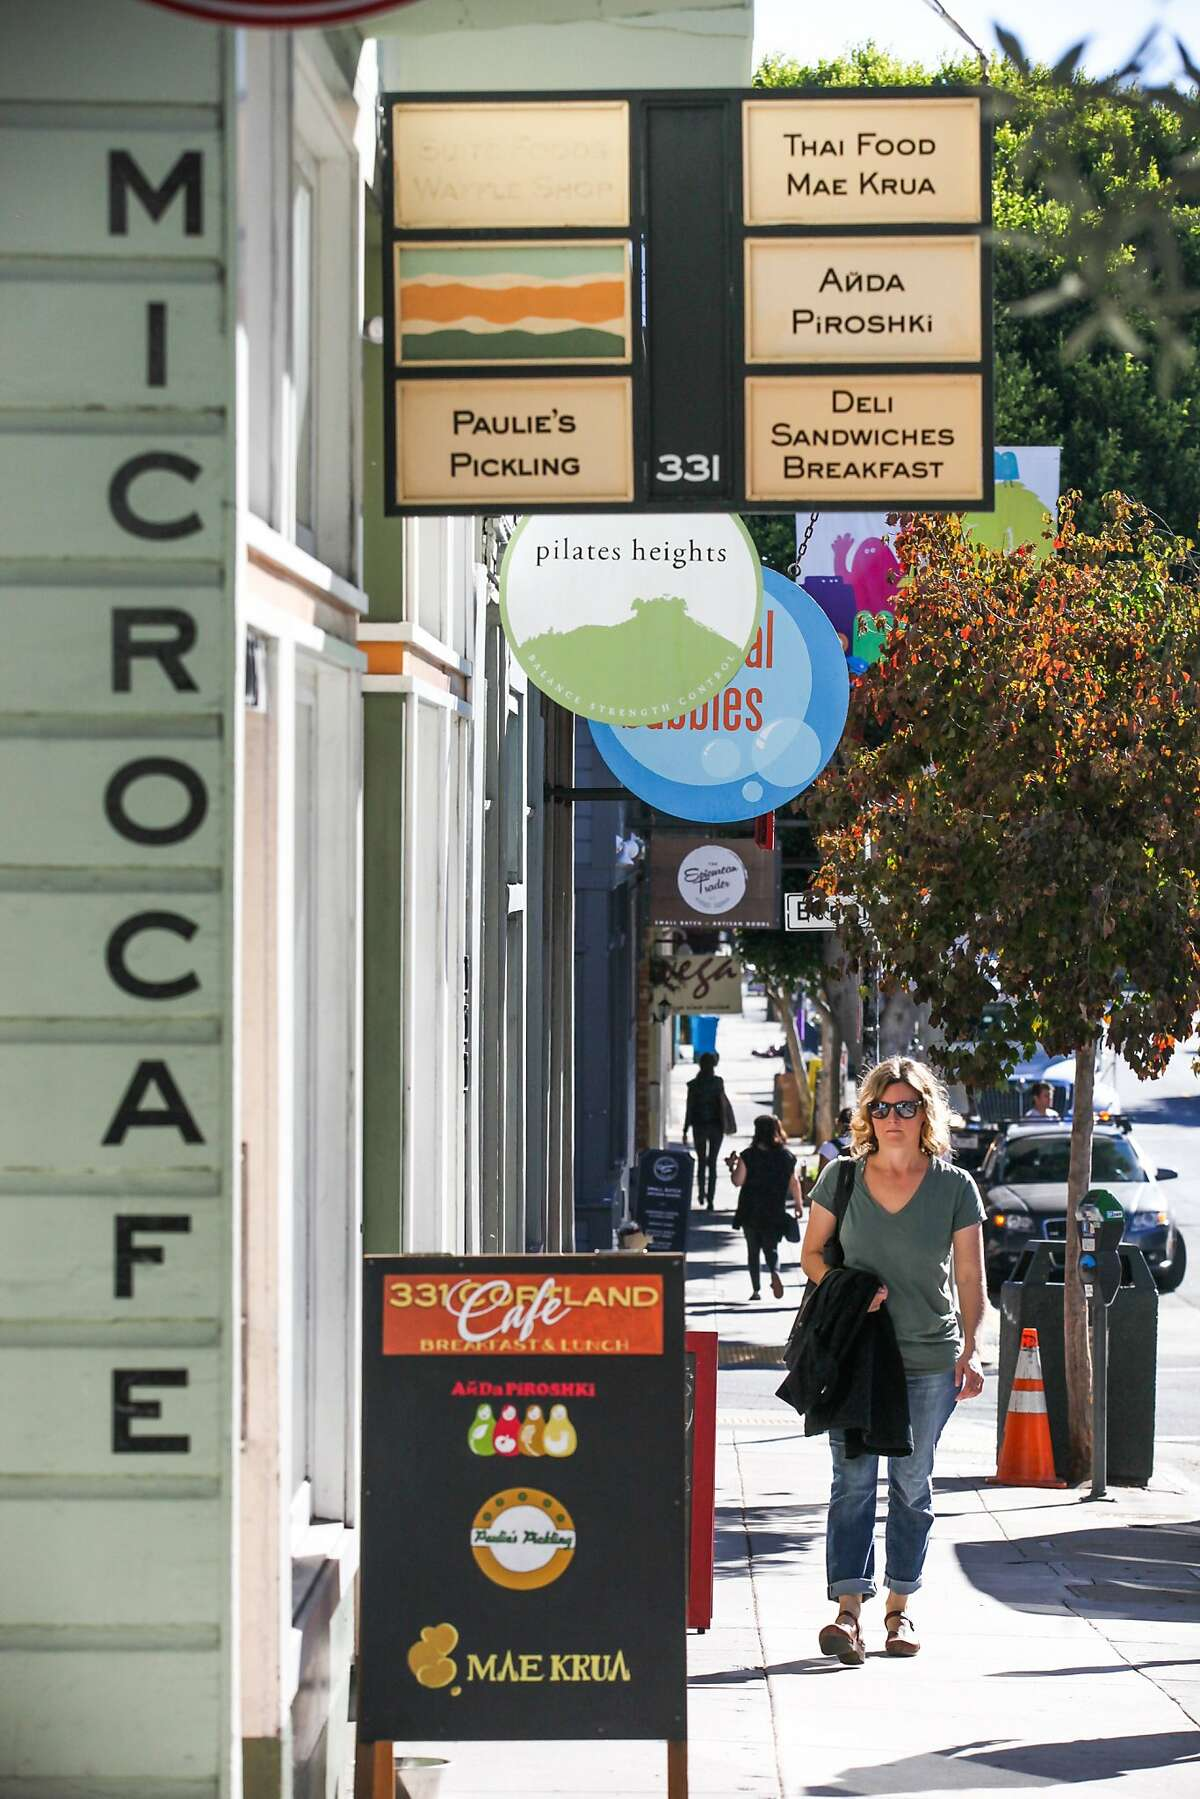 Caroline Griswold who has lived in Bernal Heights for a decade walks by new stores in Bernal Heights, San Francisco, California on October 9, 2015. She has seen the neighborhood transform and says,